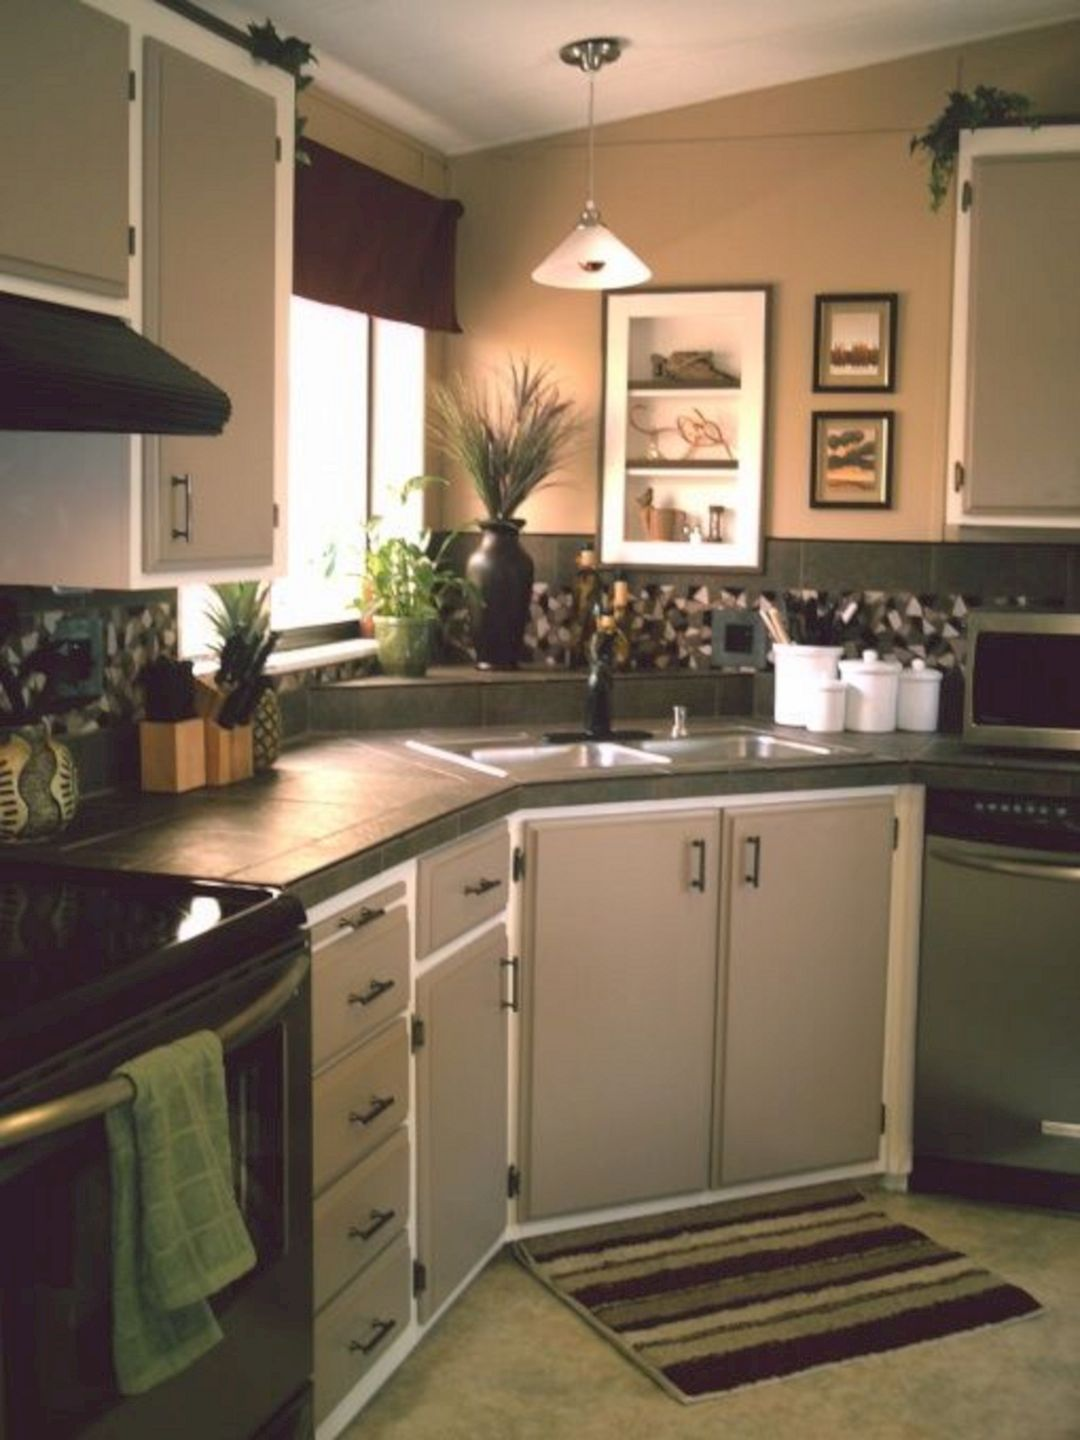 9 Beautiful RV Renovation Ideas For Holiday With Family   Cheap ...